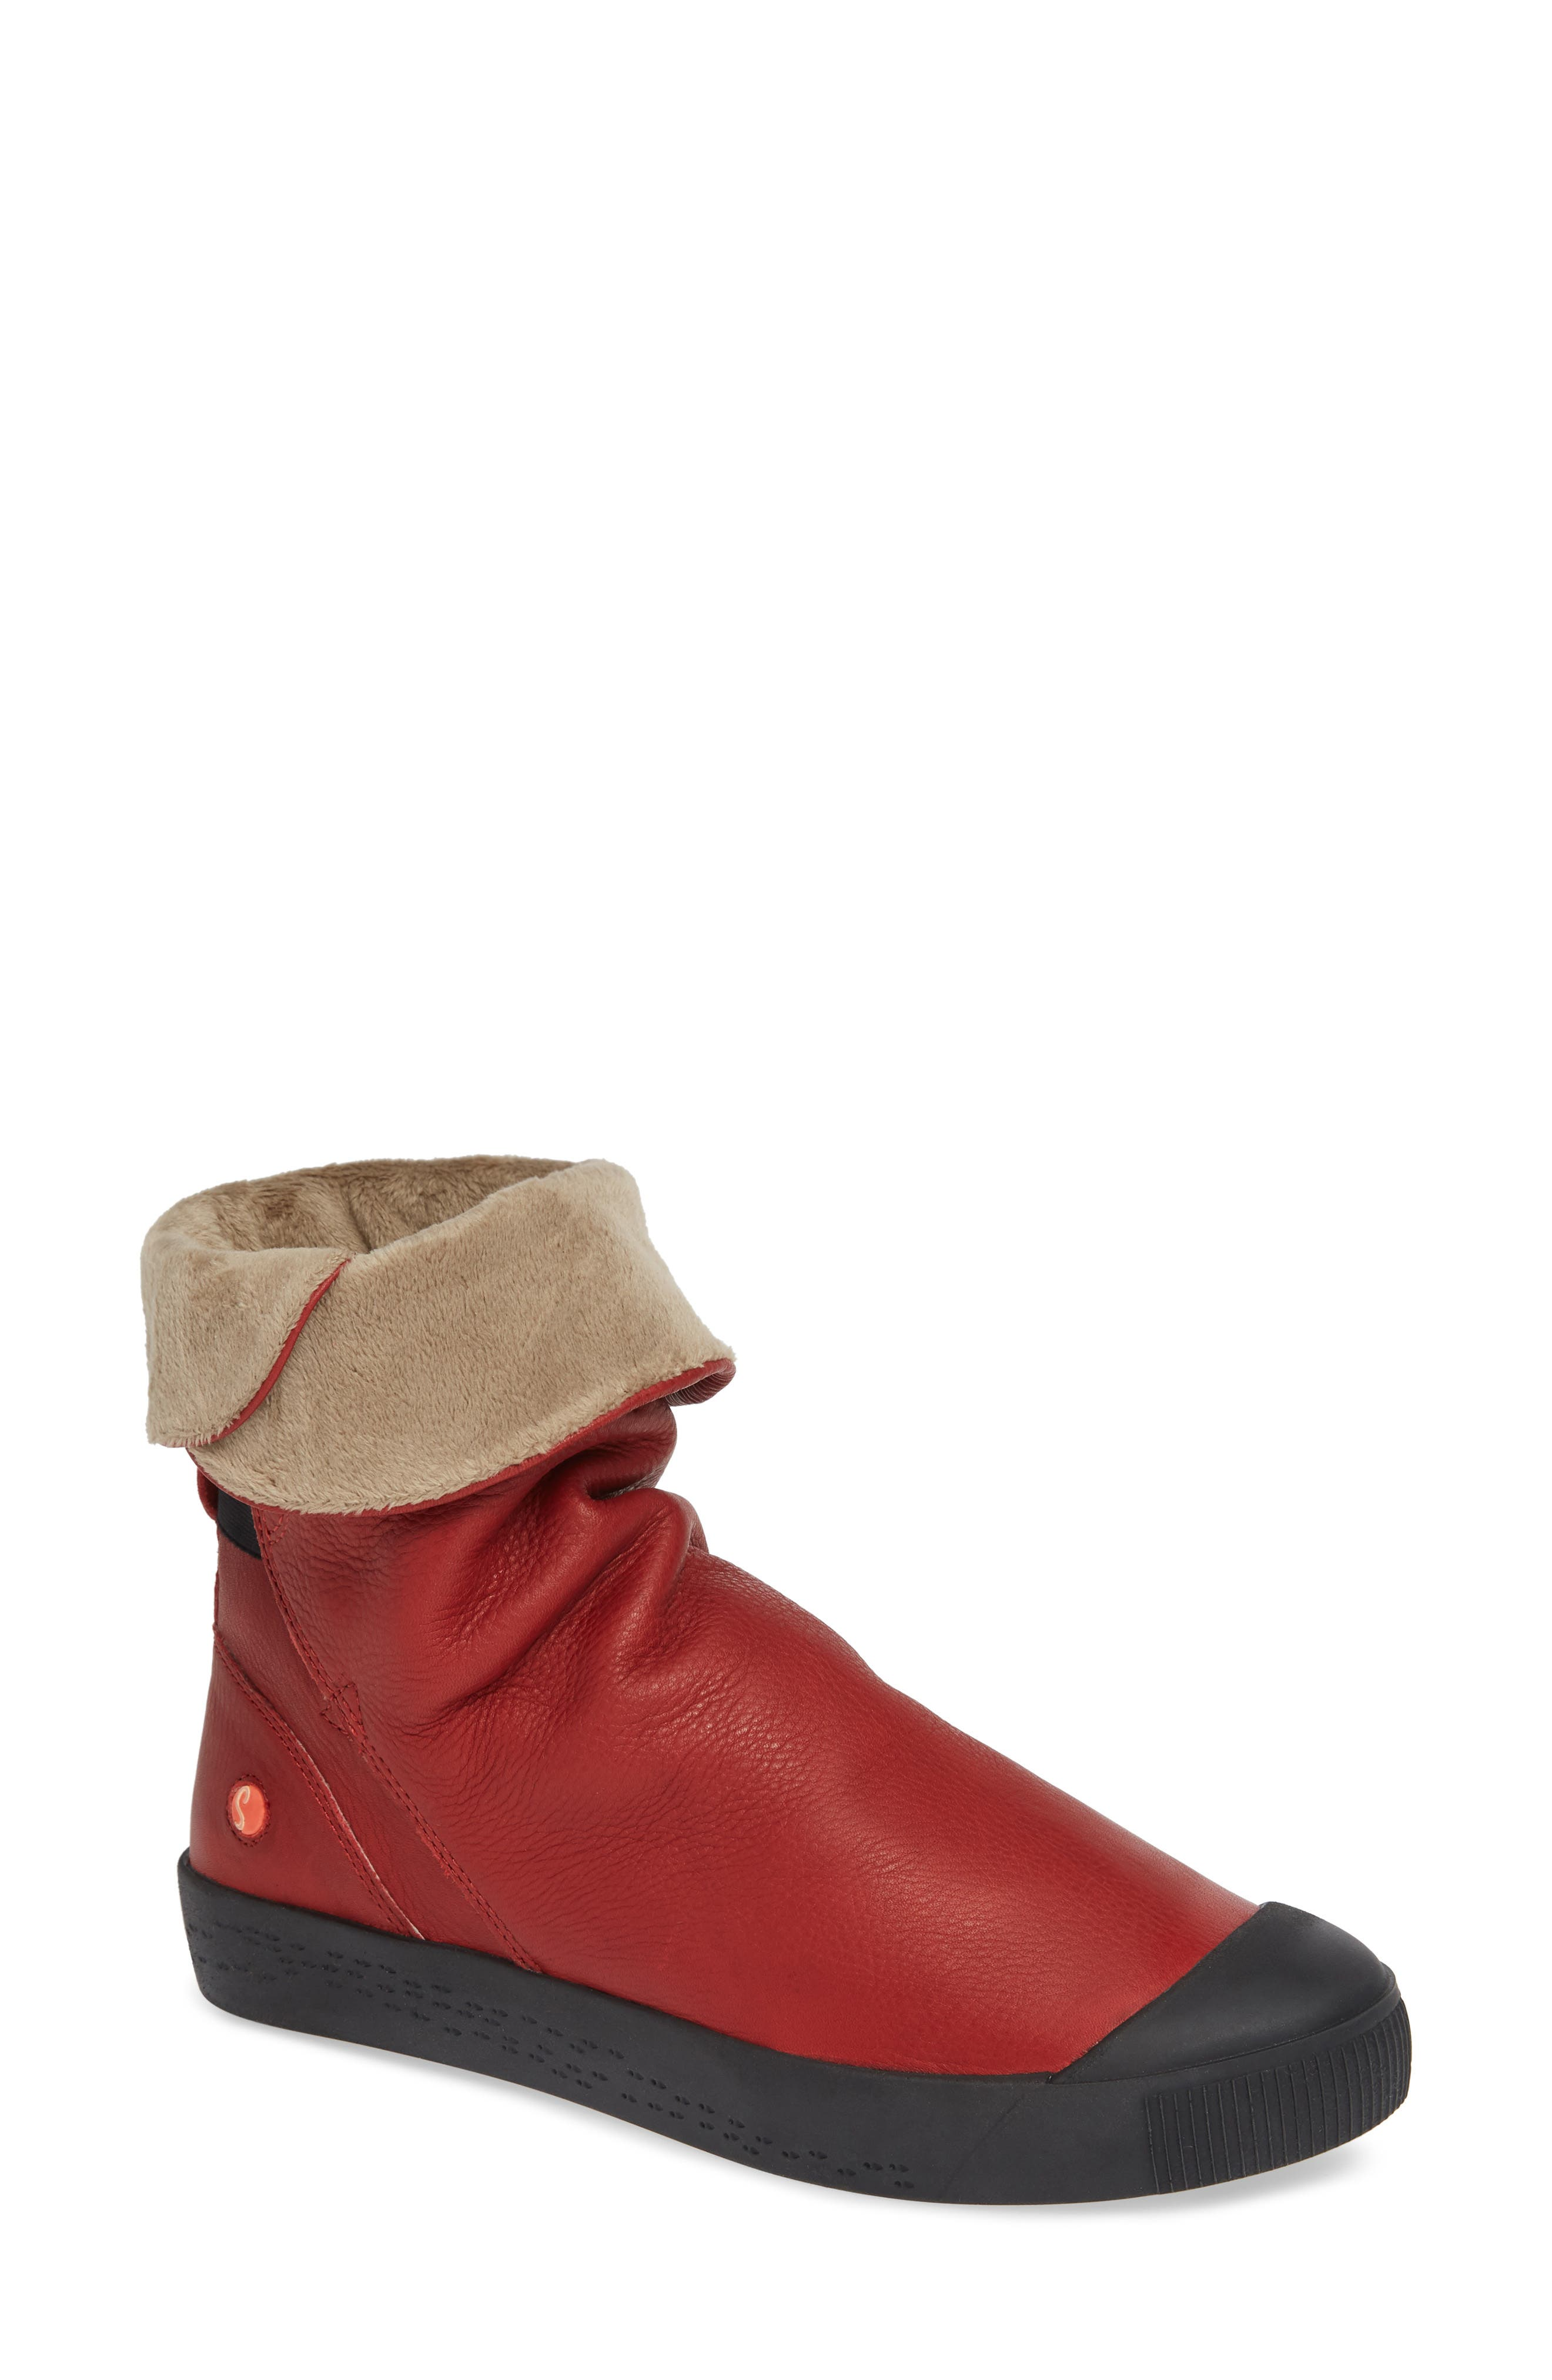 Softinos By Fly London Kaz Slouchy Sneaker Boot - Red